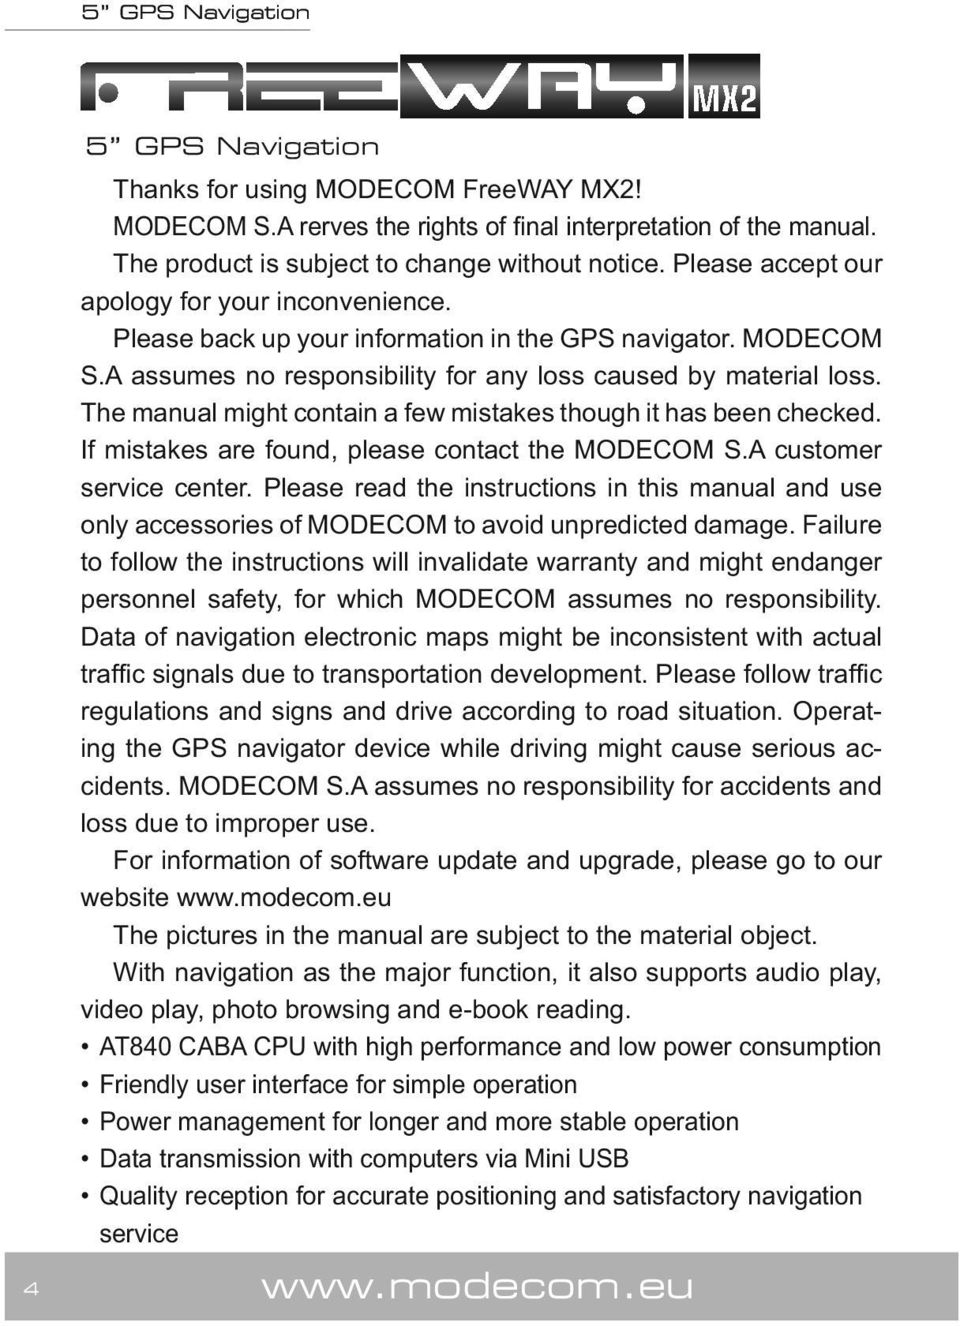 The manual might contain a few mistakes though it has been checked. If mistakes are found, please contact the MODECOM S.A customer service center.